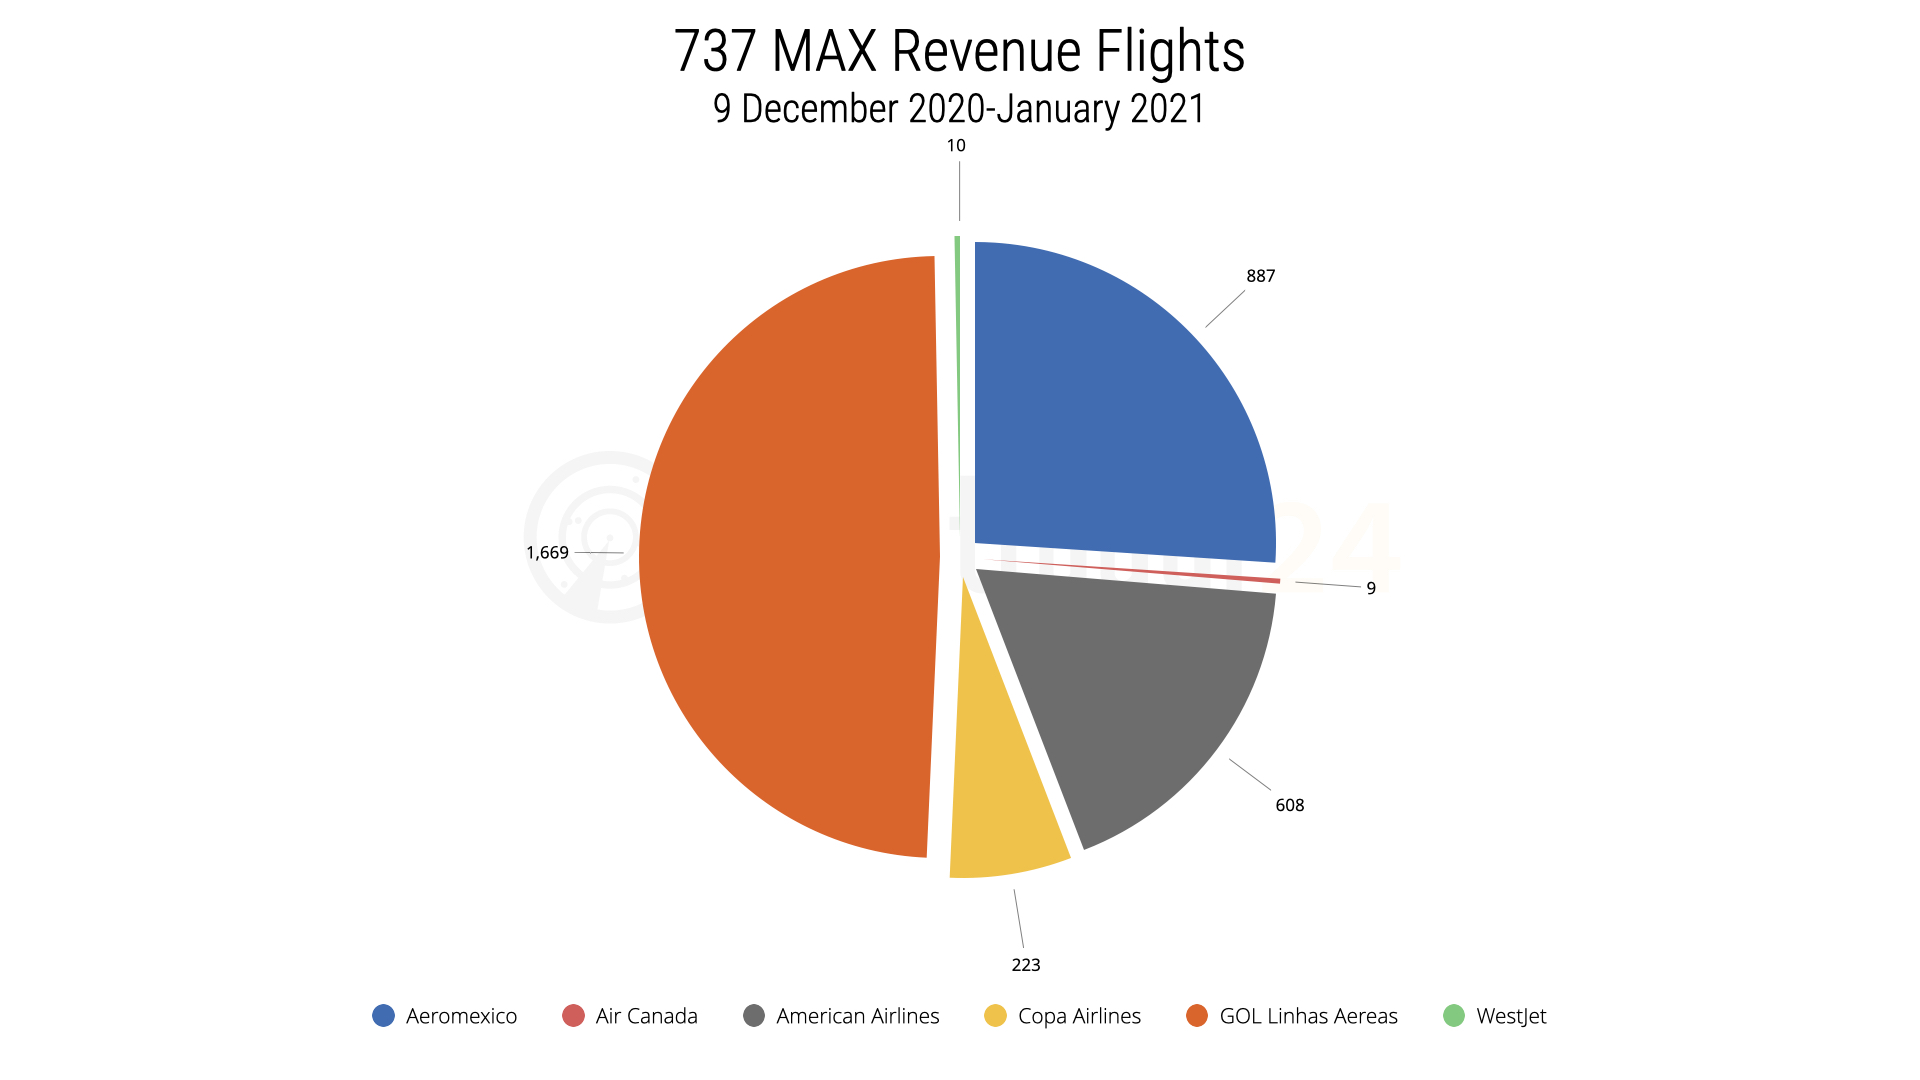 737 MAX Revenue Flgihts since return to service on 9 December